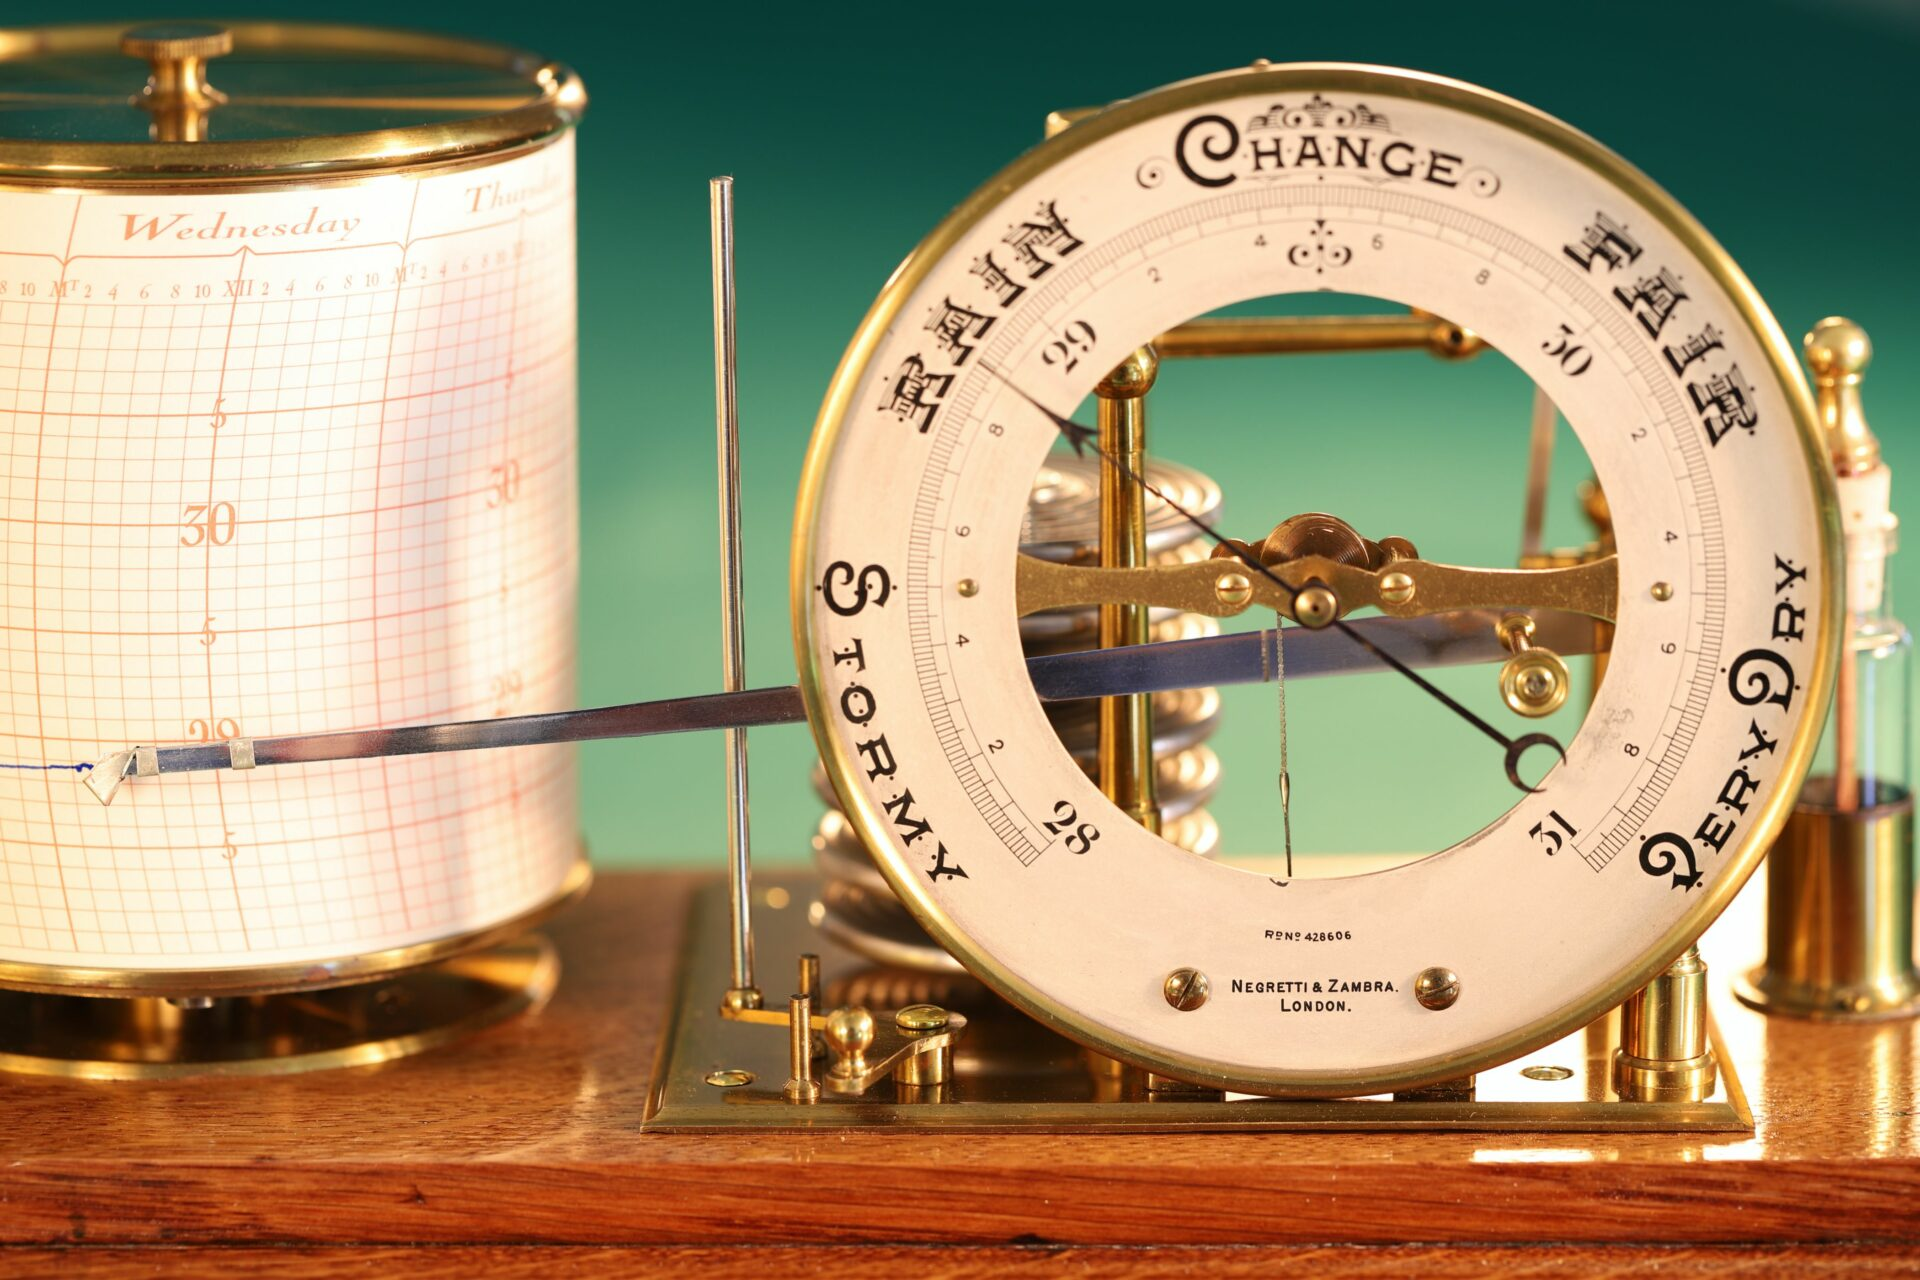 Close up of Negretti & Zambra Barograph with Dial No 455 c1918 taken from front